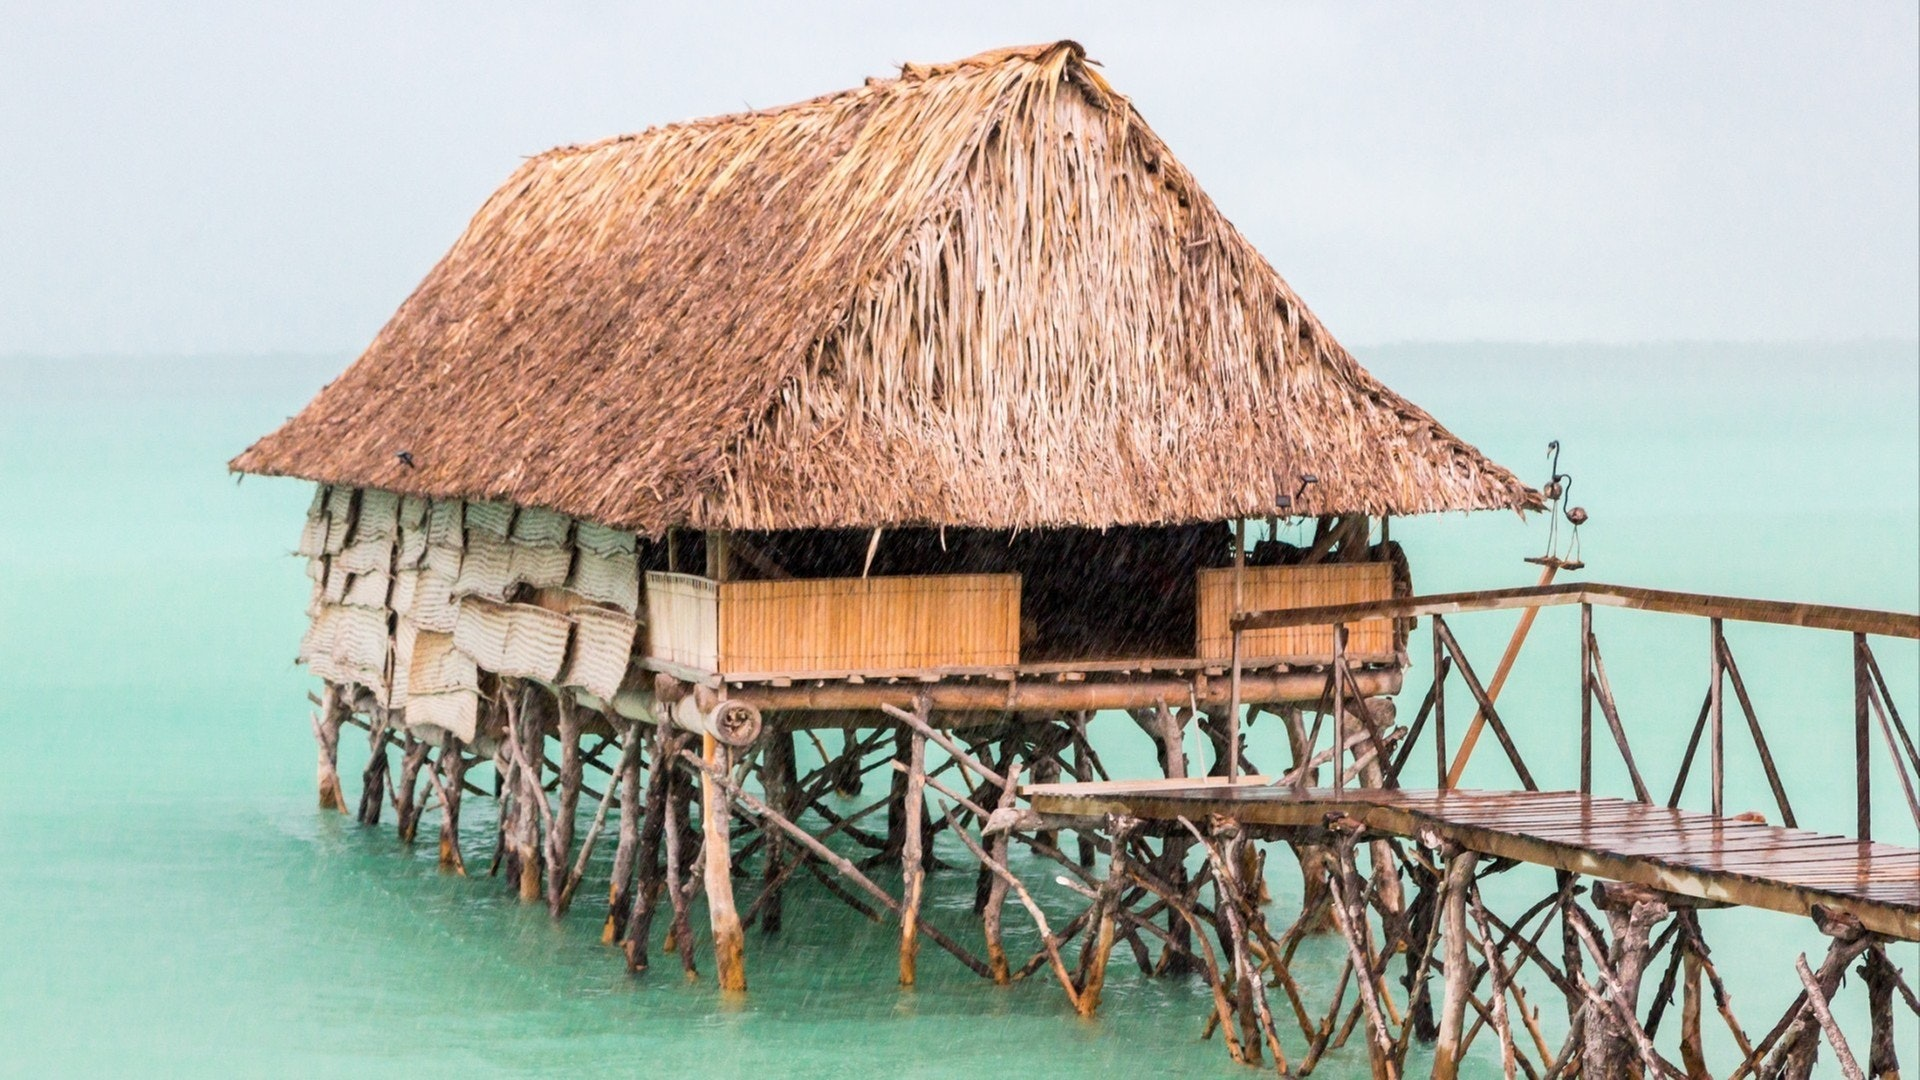 Traditional authentic over water thatched roof bungalow of native local aborigines Micronesian people